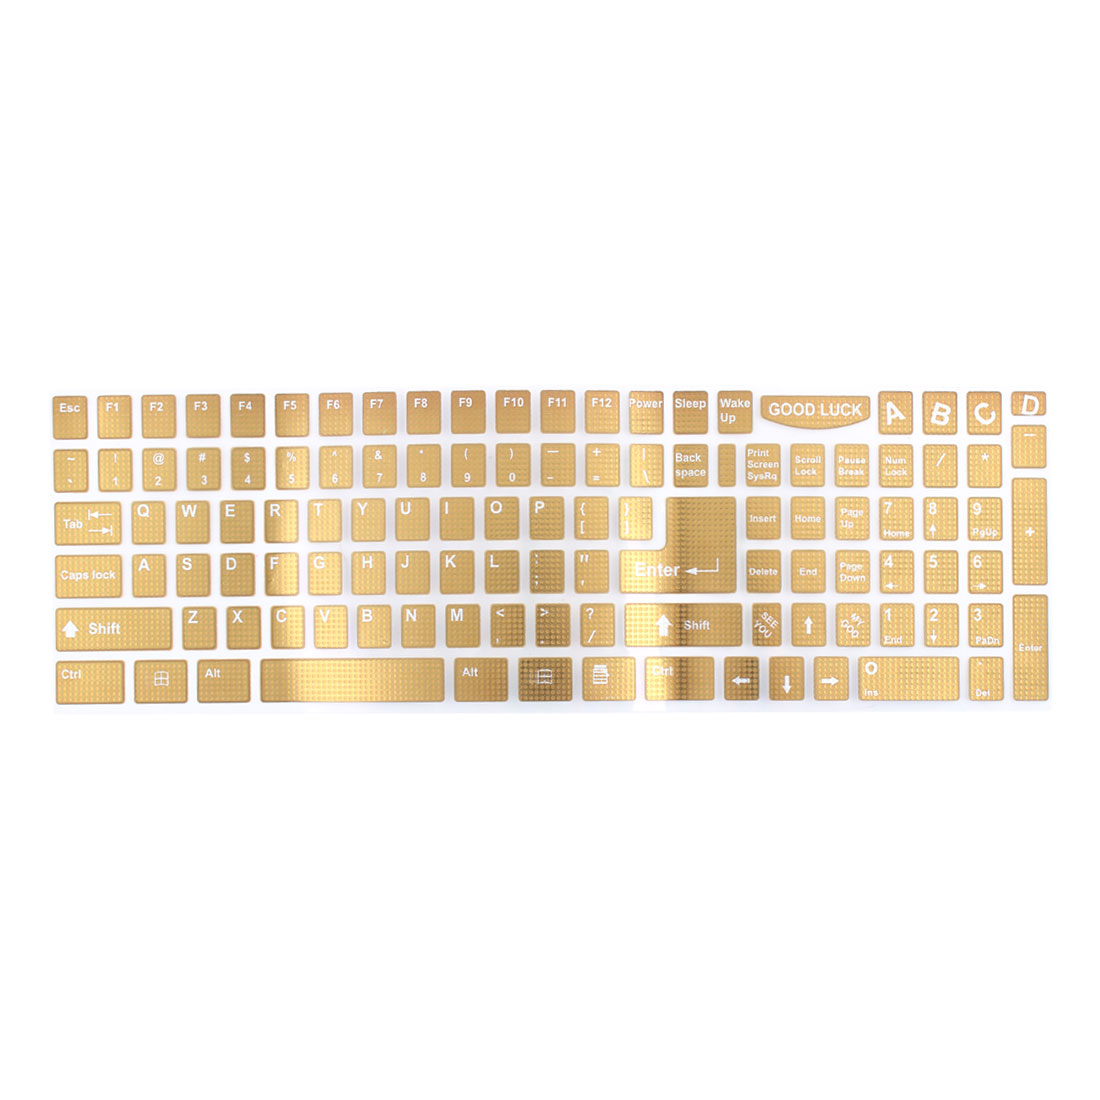 White English Letters Keyboard Sticker Decal Gold Tone for Laptop PC